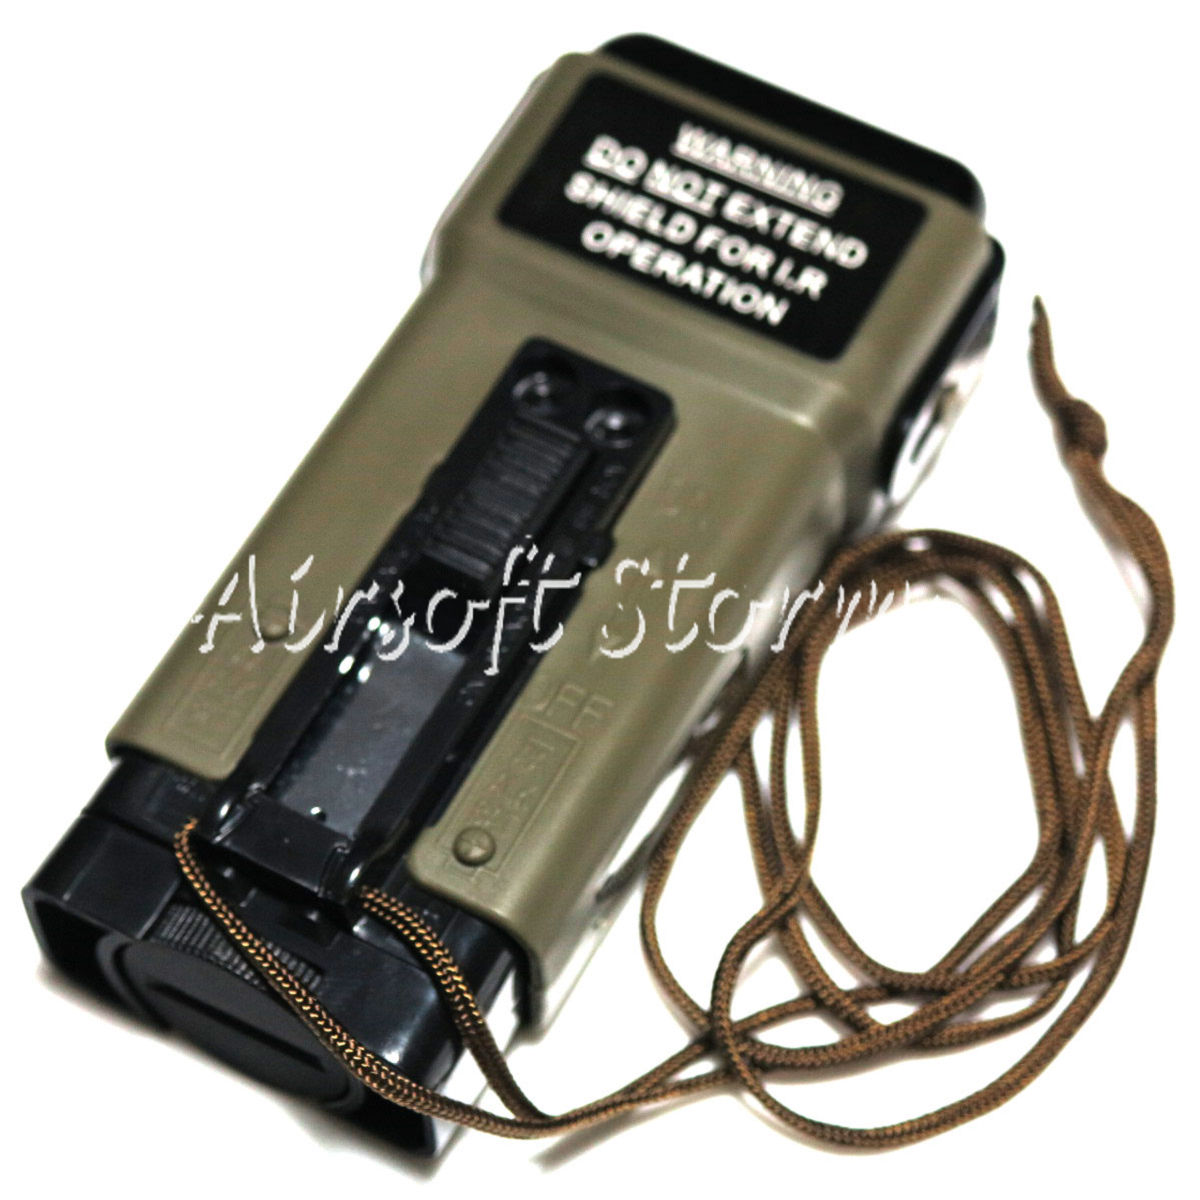 Airsoft AEG Shooting Gear G&P Military Distress Marker Light Type BB Loader 130rd GP267 Olive Drab OD